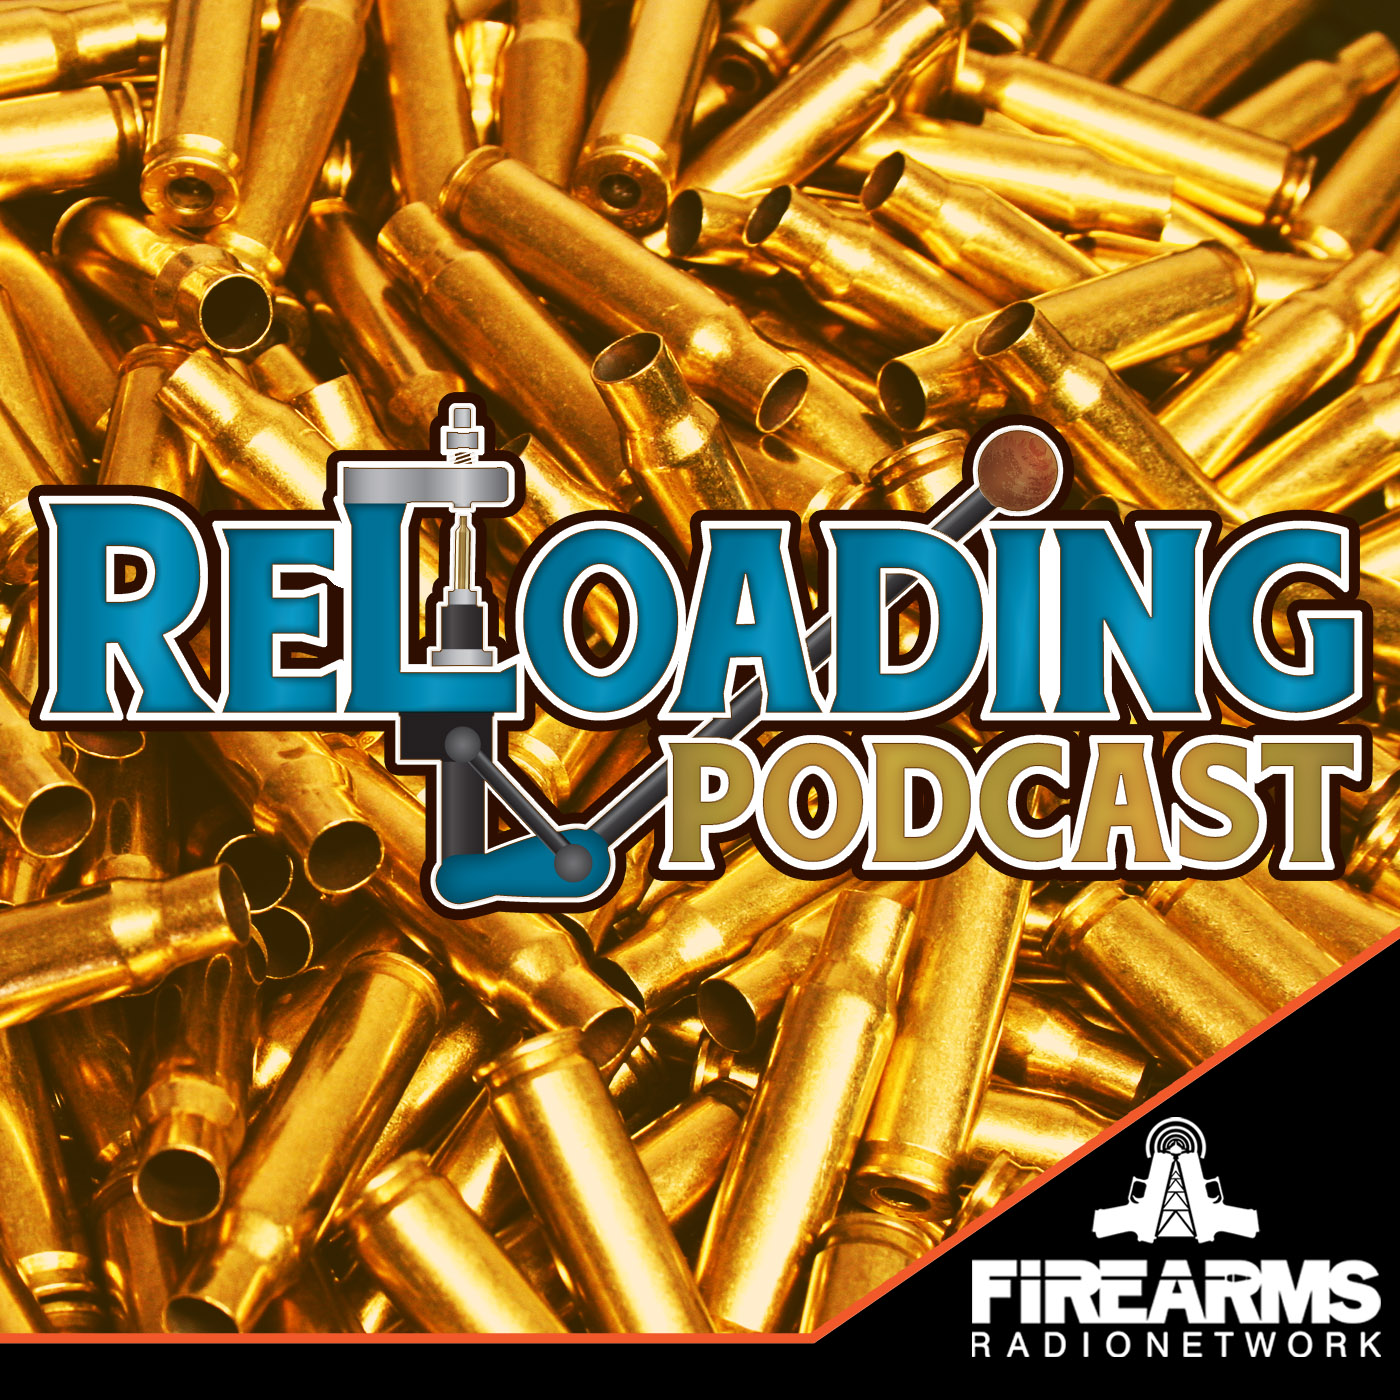 Reloading Podcast 247 - It weighs on us    — Firearms Radio Network